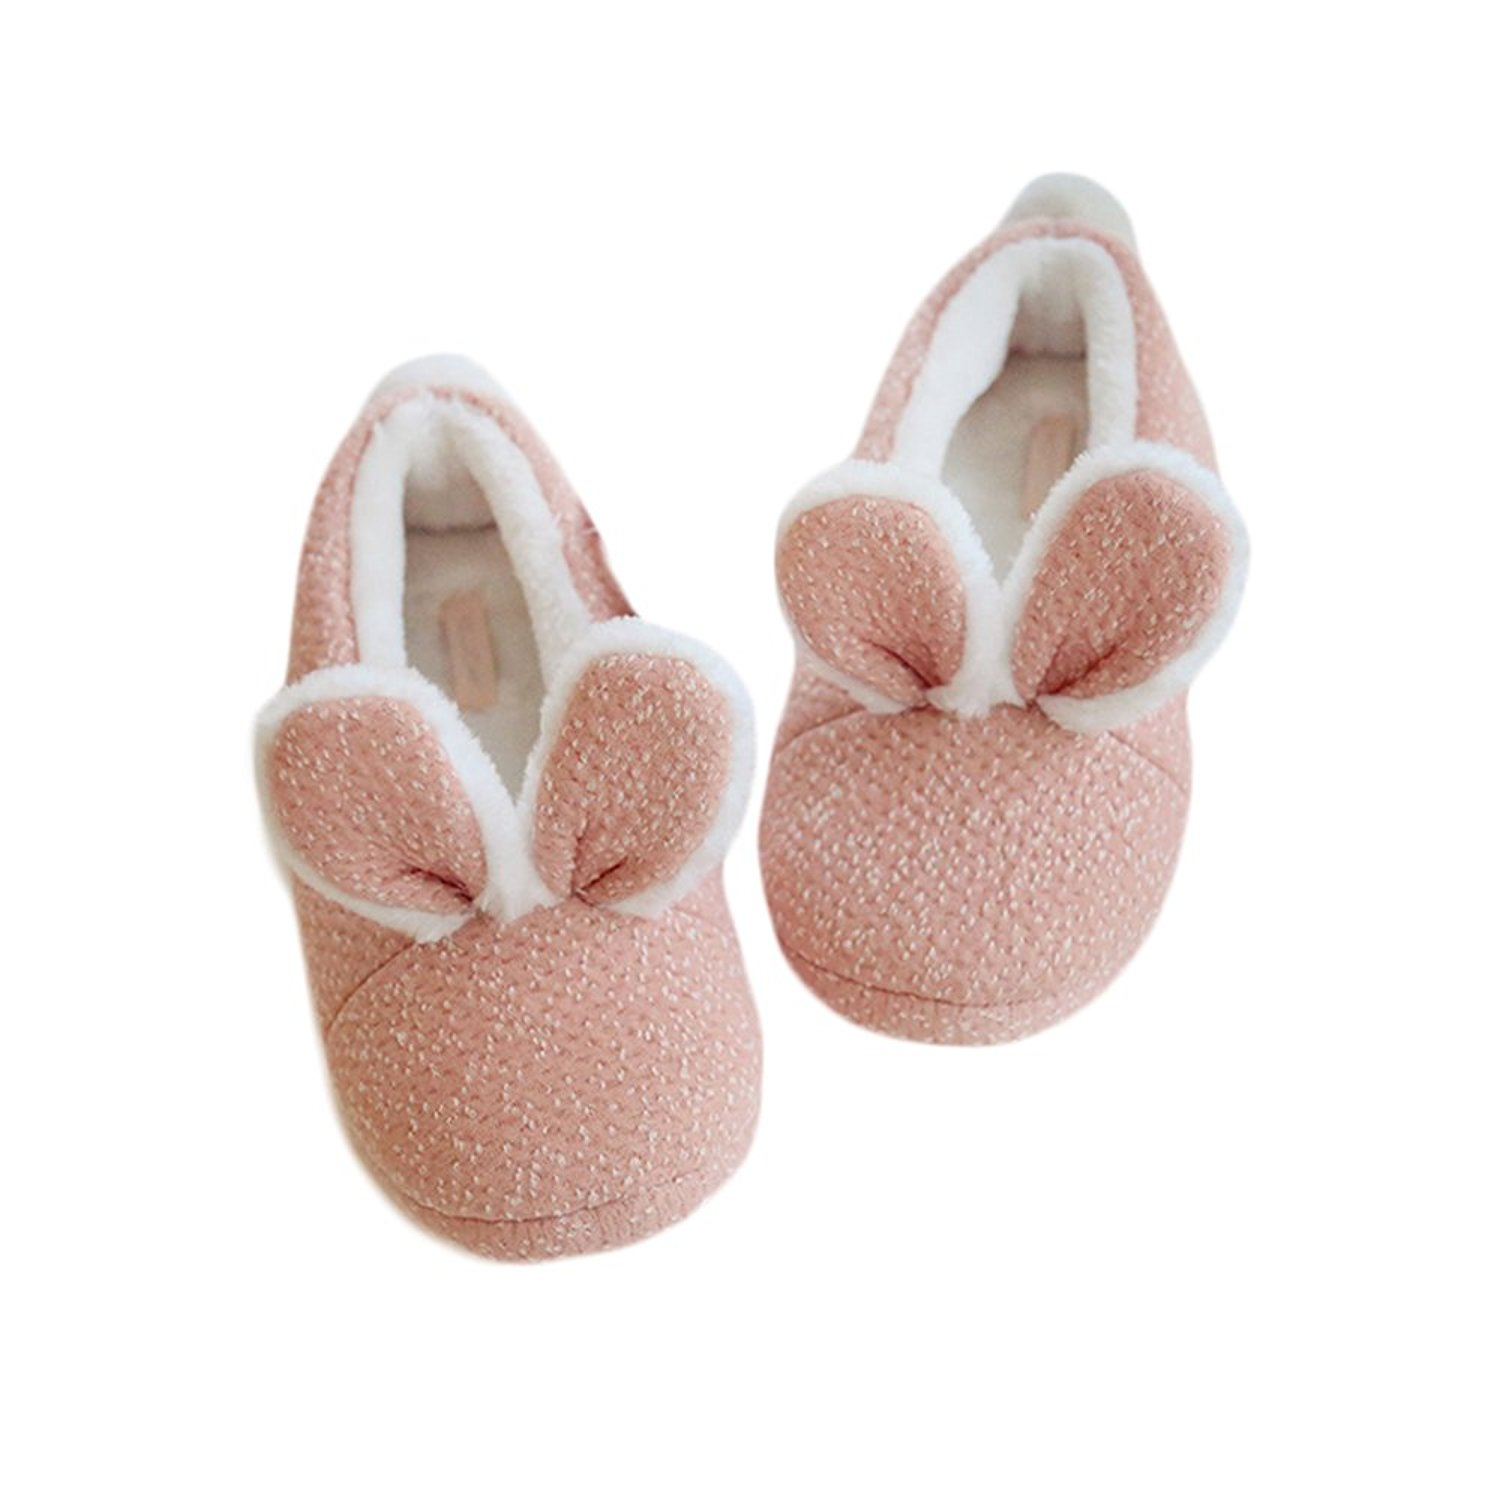 SOCOMP Cute Pink Bunny Rabbit Plush Furry Warm Cozy House Winter Slippers Indoor Shoes for Bedroom Kitchen Dining Room for Girls Women